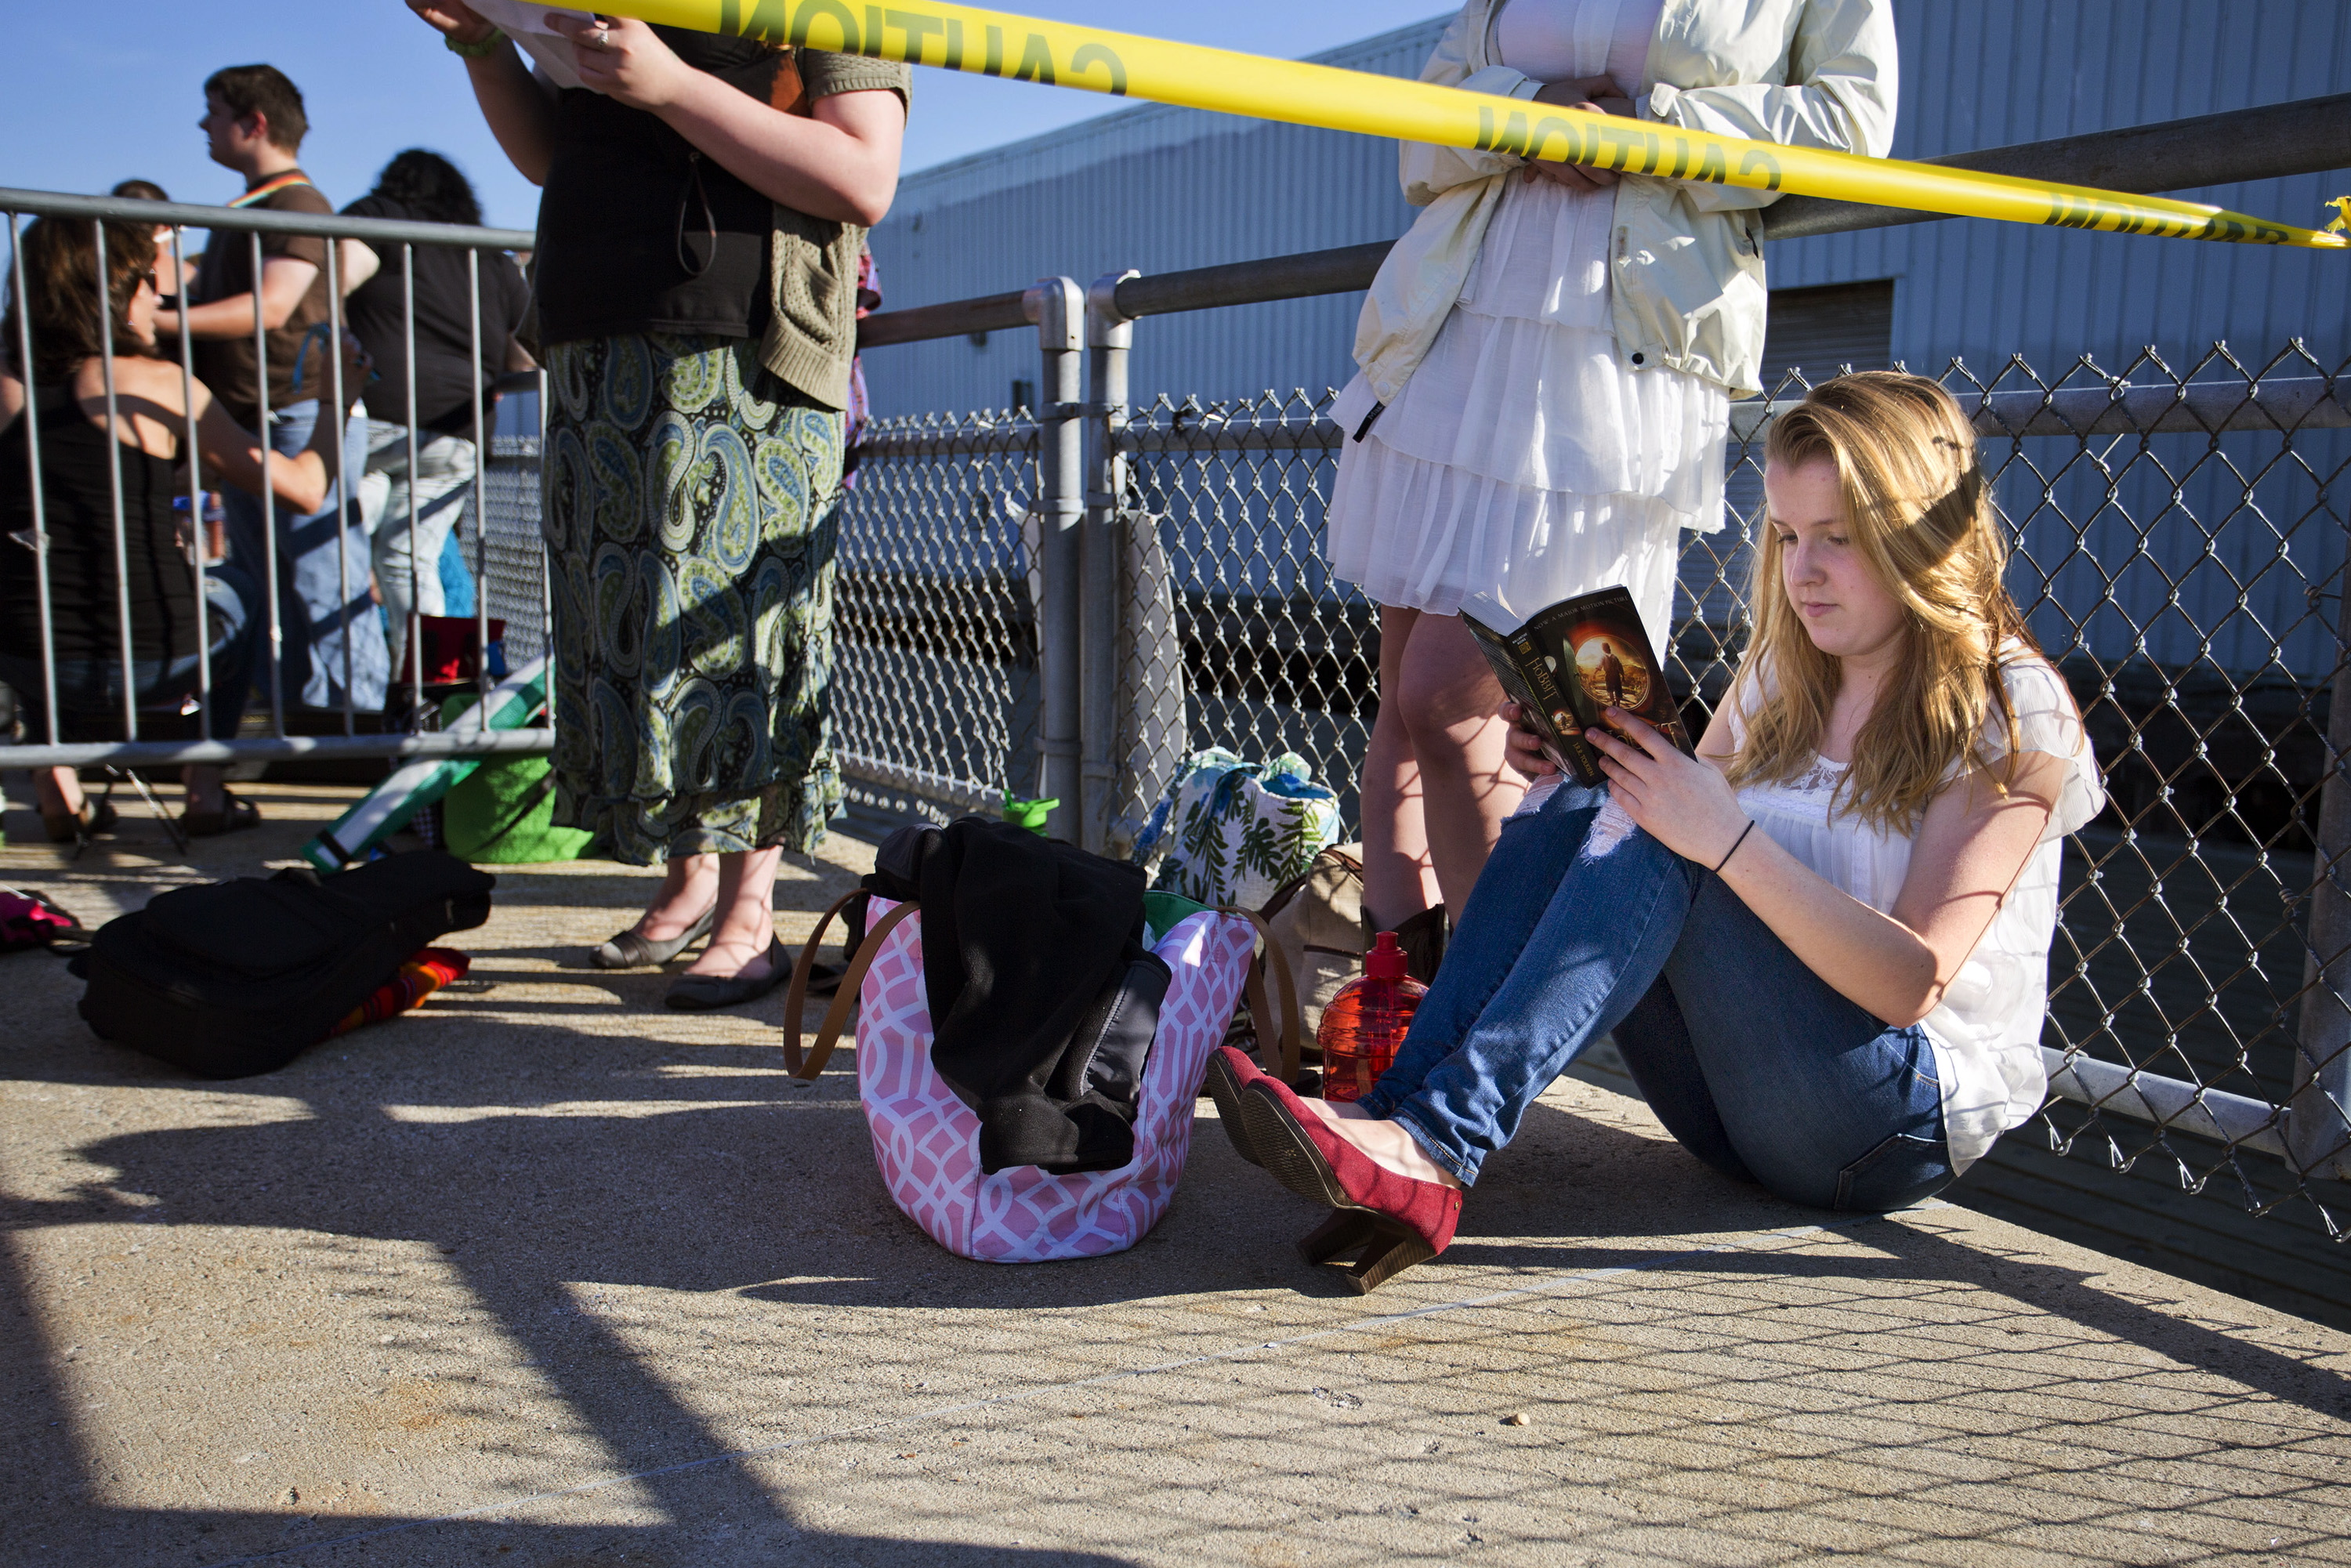 """Abigail Day, 17, of Cornish, reads a book while waiting to audition for """"American Idol"""" at the Maine State Pier on Wednesday. Day, who planned to sing """"I See Fire"""" by Ed Sheeran, was in line at 2 a.m."""